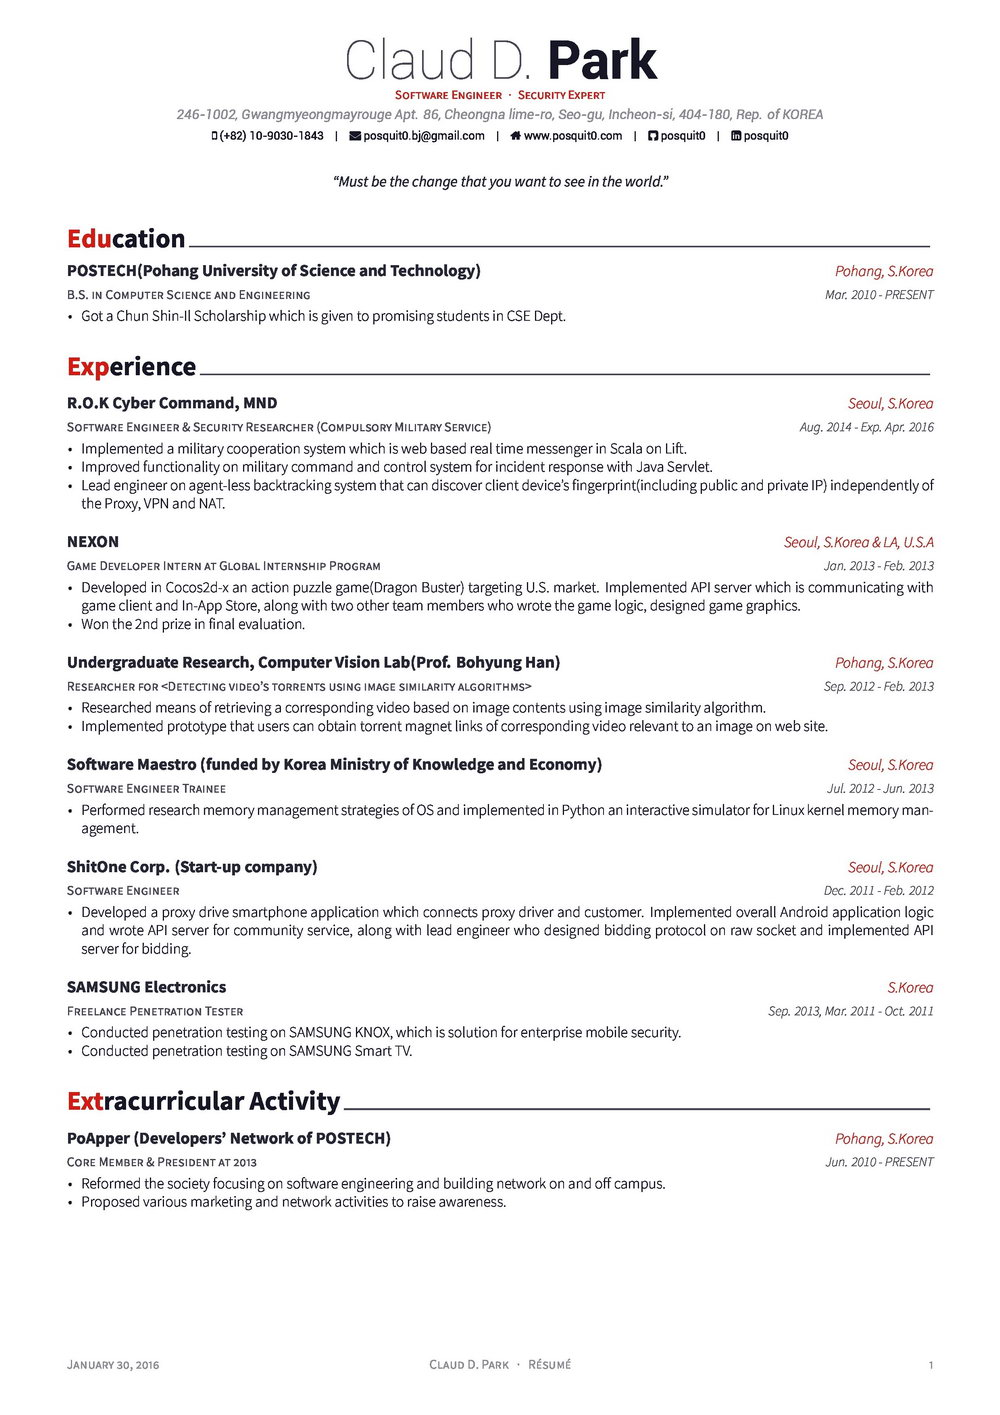 Resume In Latex Github Posquit0awesome Cv Awesome Cv Is Latex Th